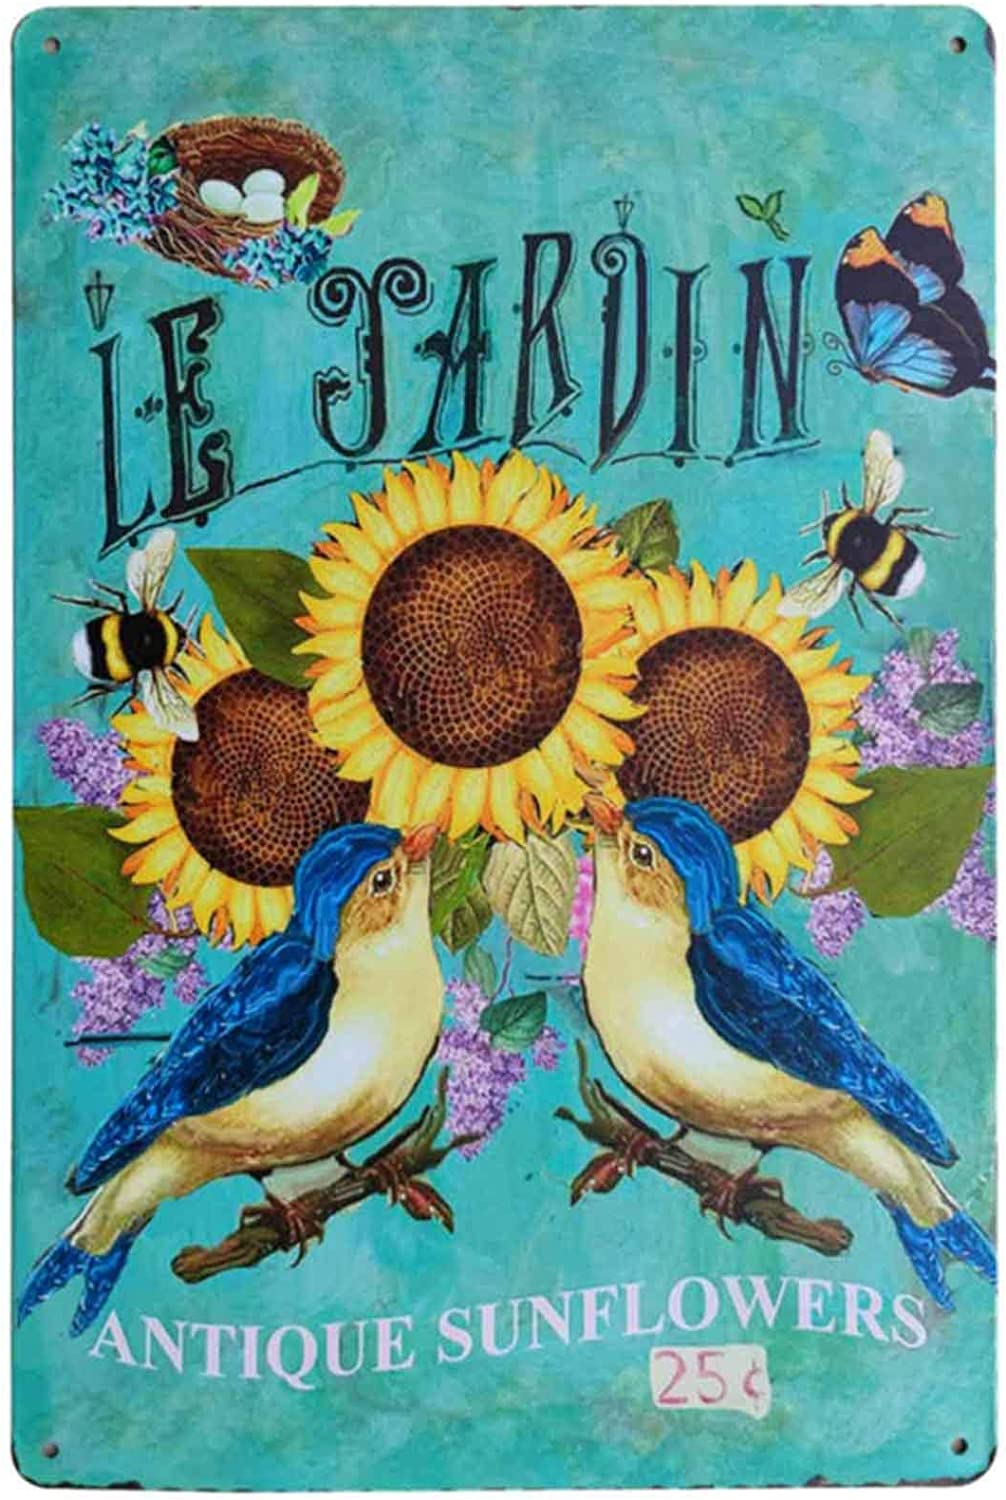 TISOSO Rustic Sunflower Butterfly Birds Le Jardin Vintage Metal Sign Garden Themed Farmhouse Home Decor Bathroom Decorative Signs Plaques 8X12Inch